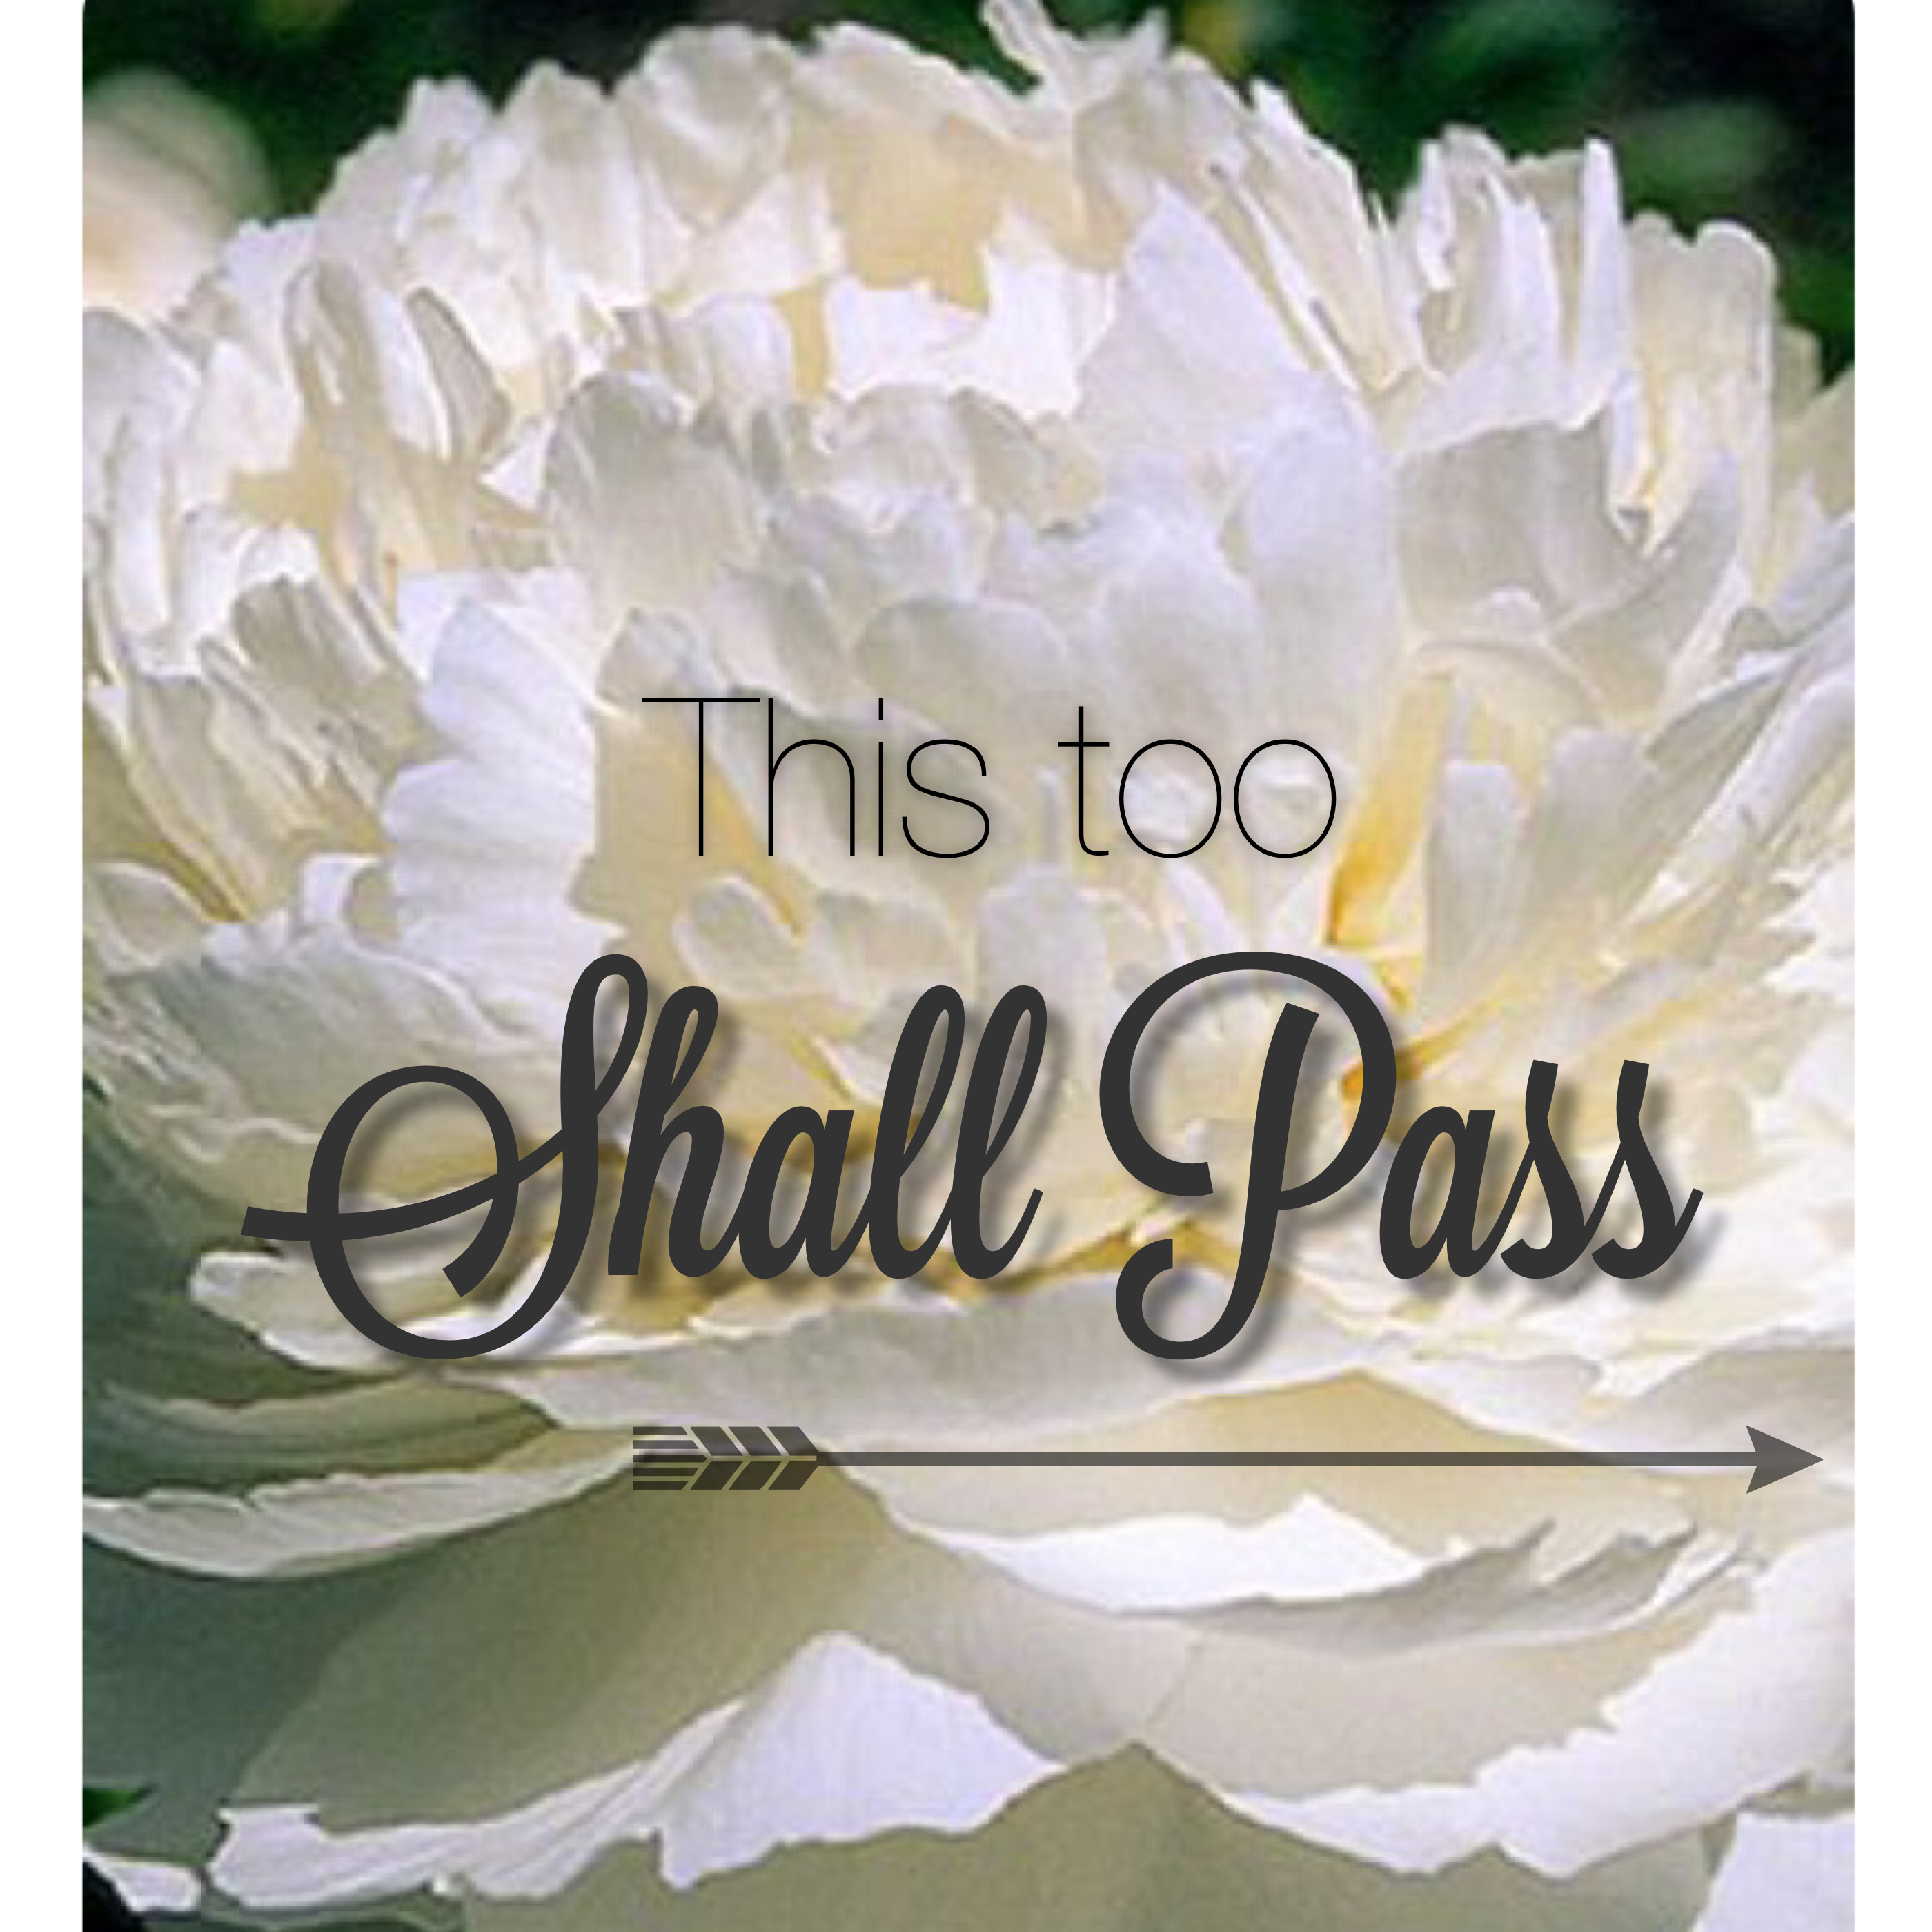 Why do bad things happen...this too shall pass?